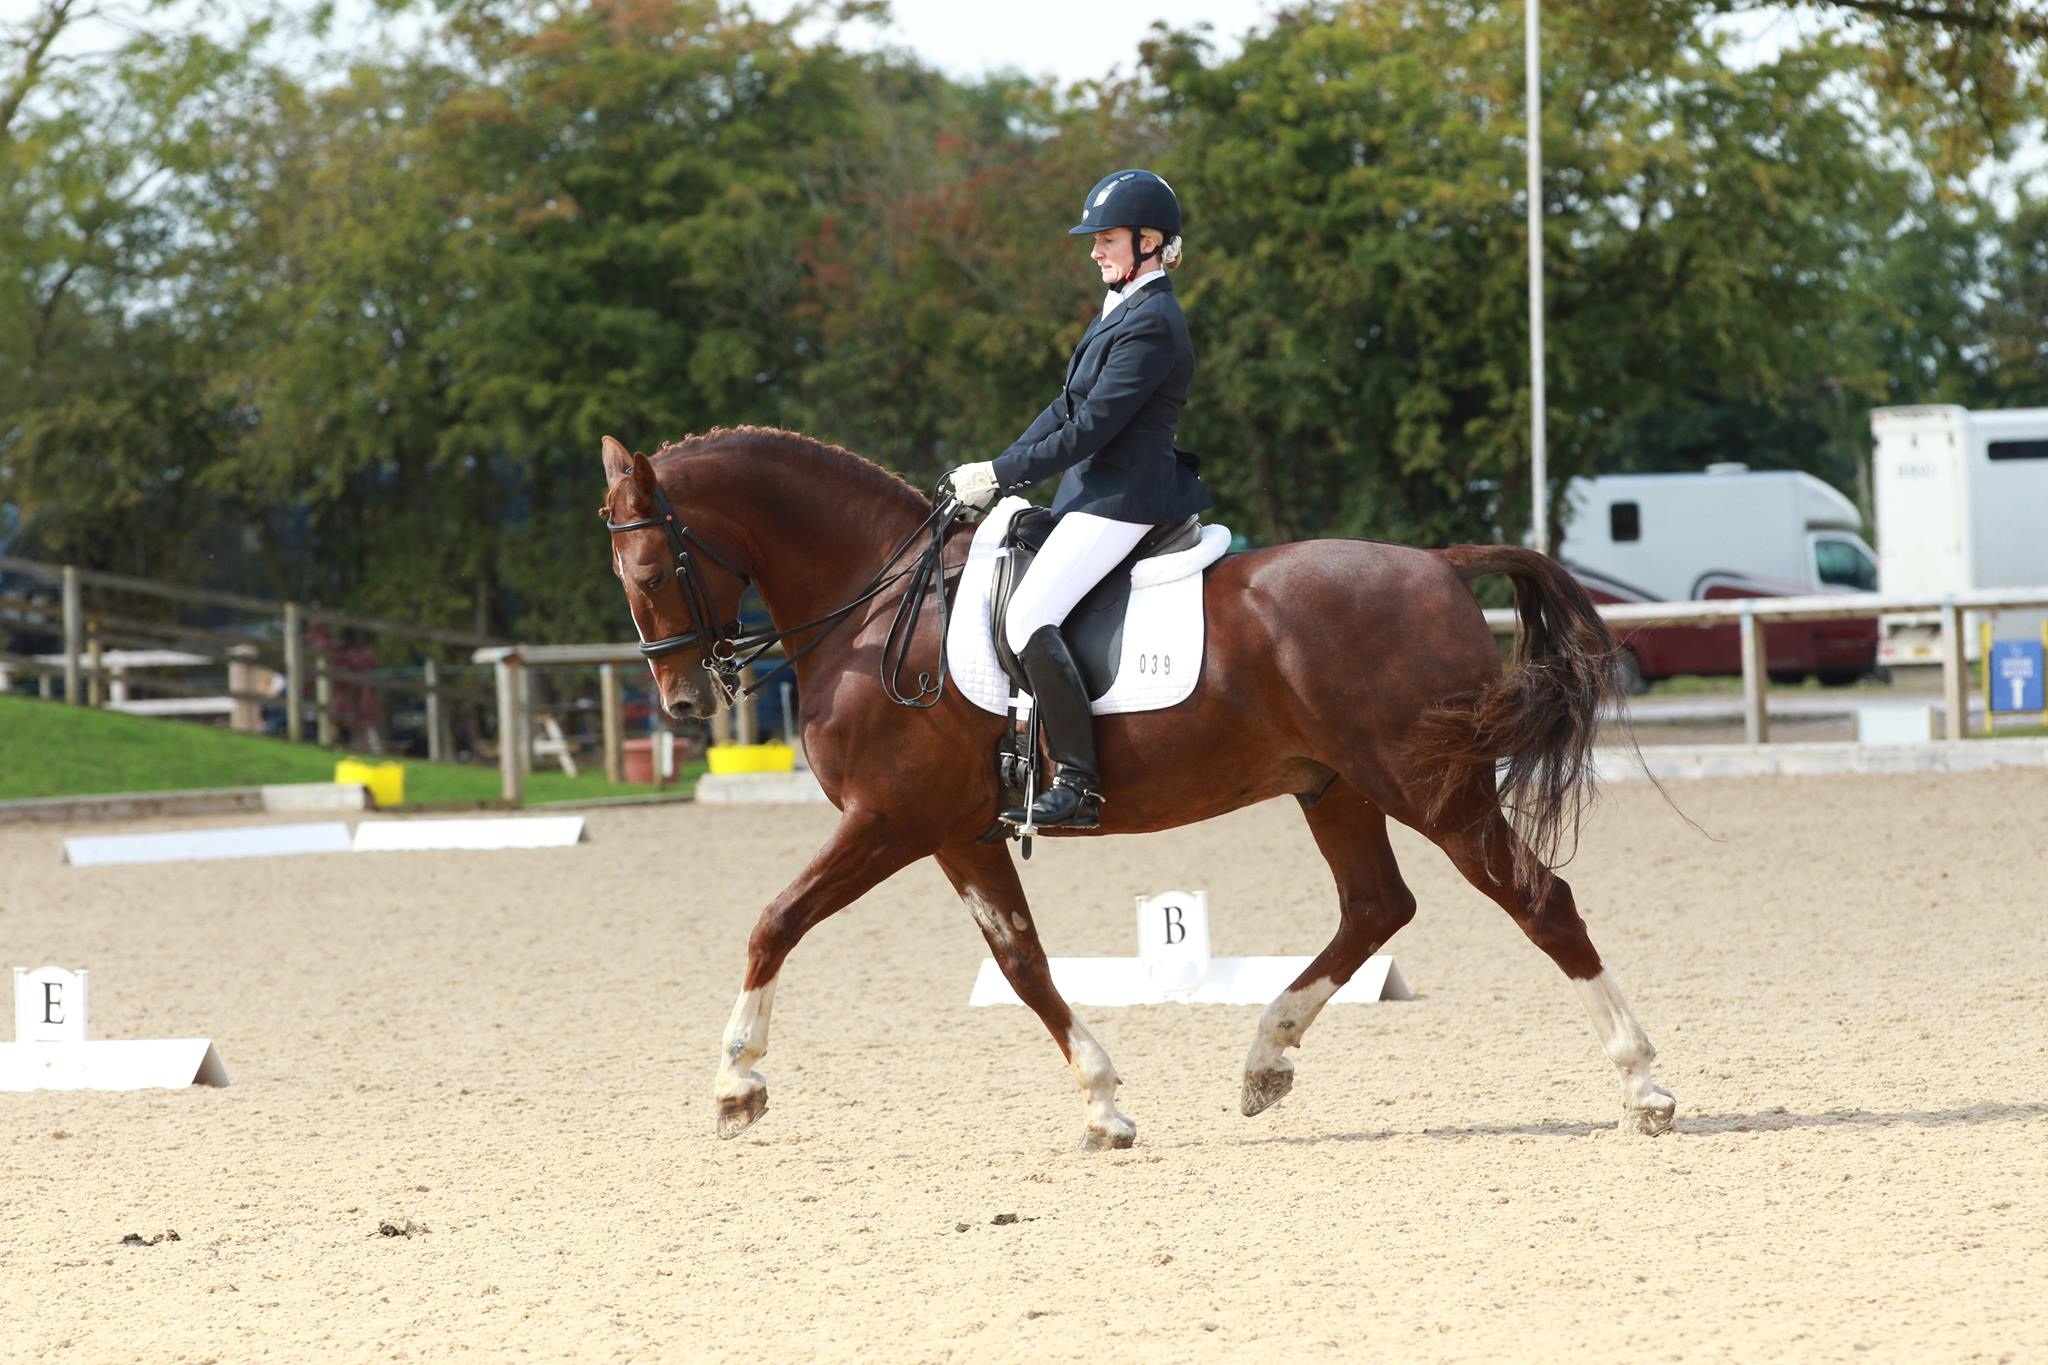 Swindon Dressage - Rose on Zorro